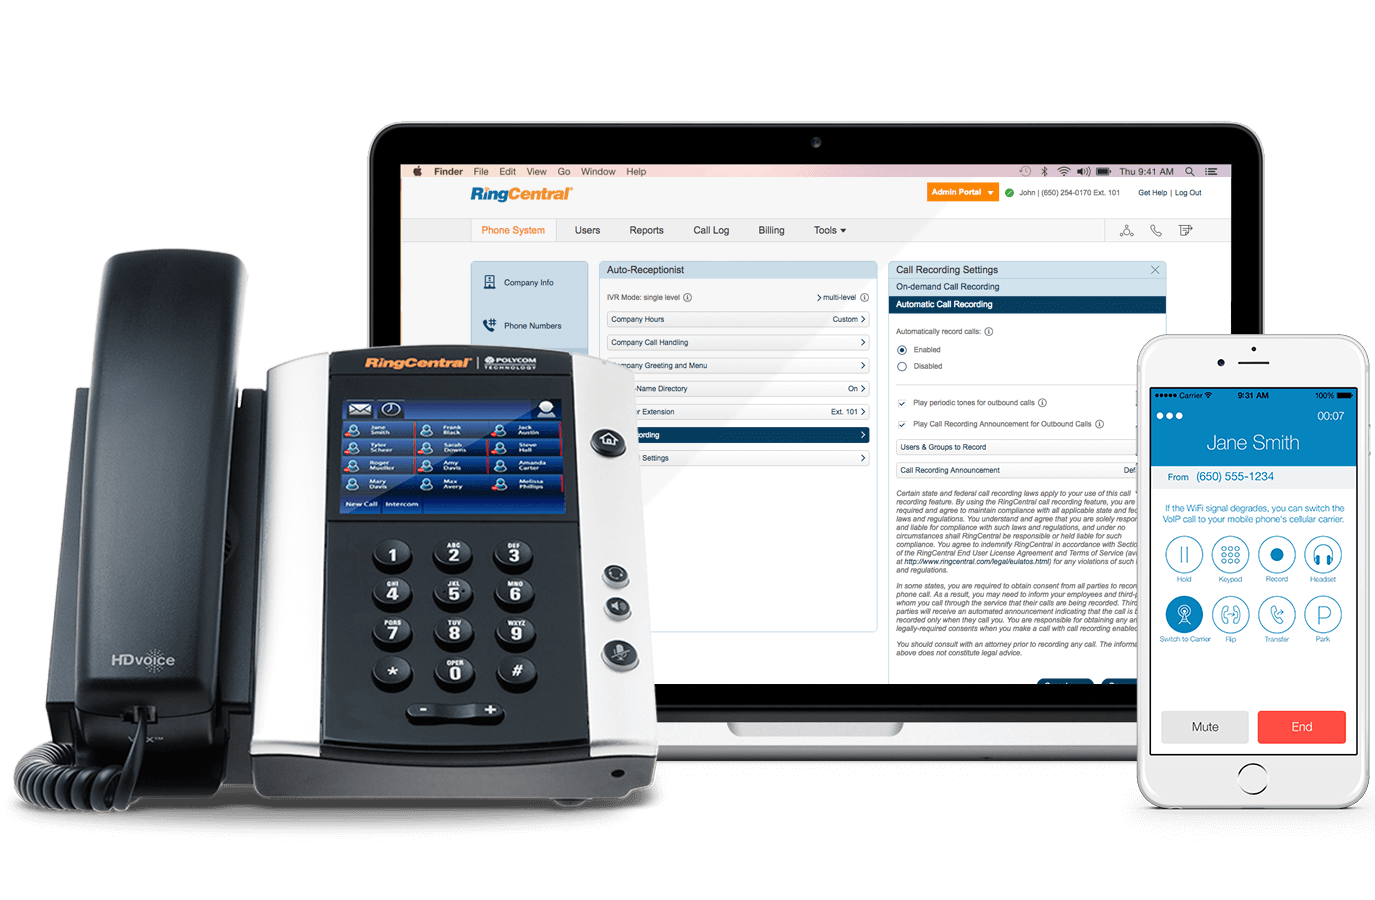 RingCentral Device